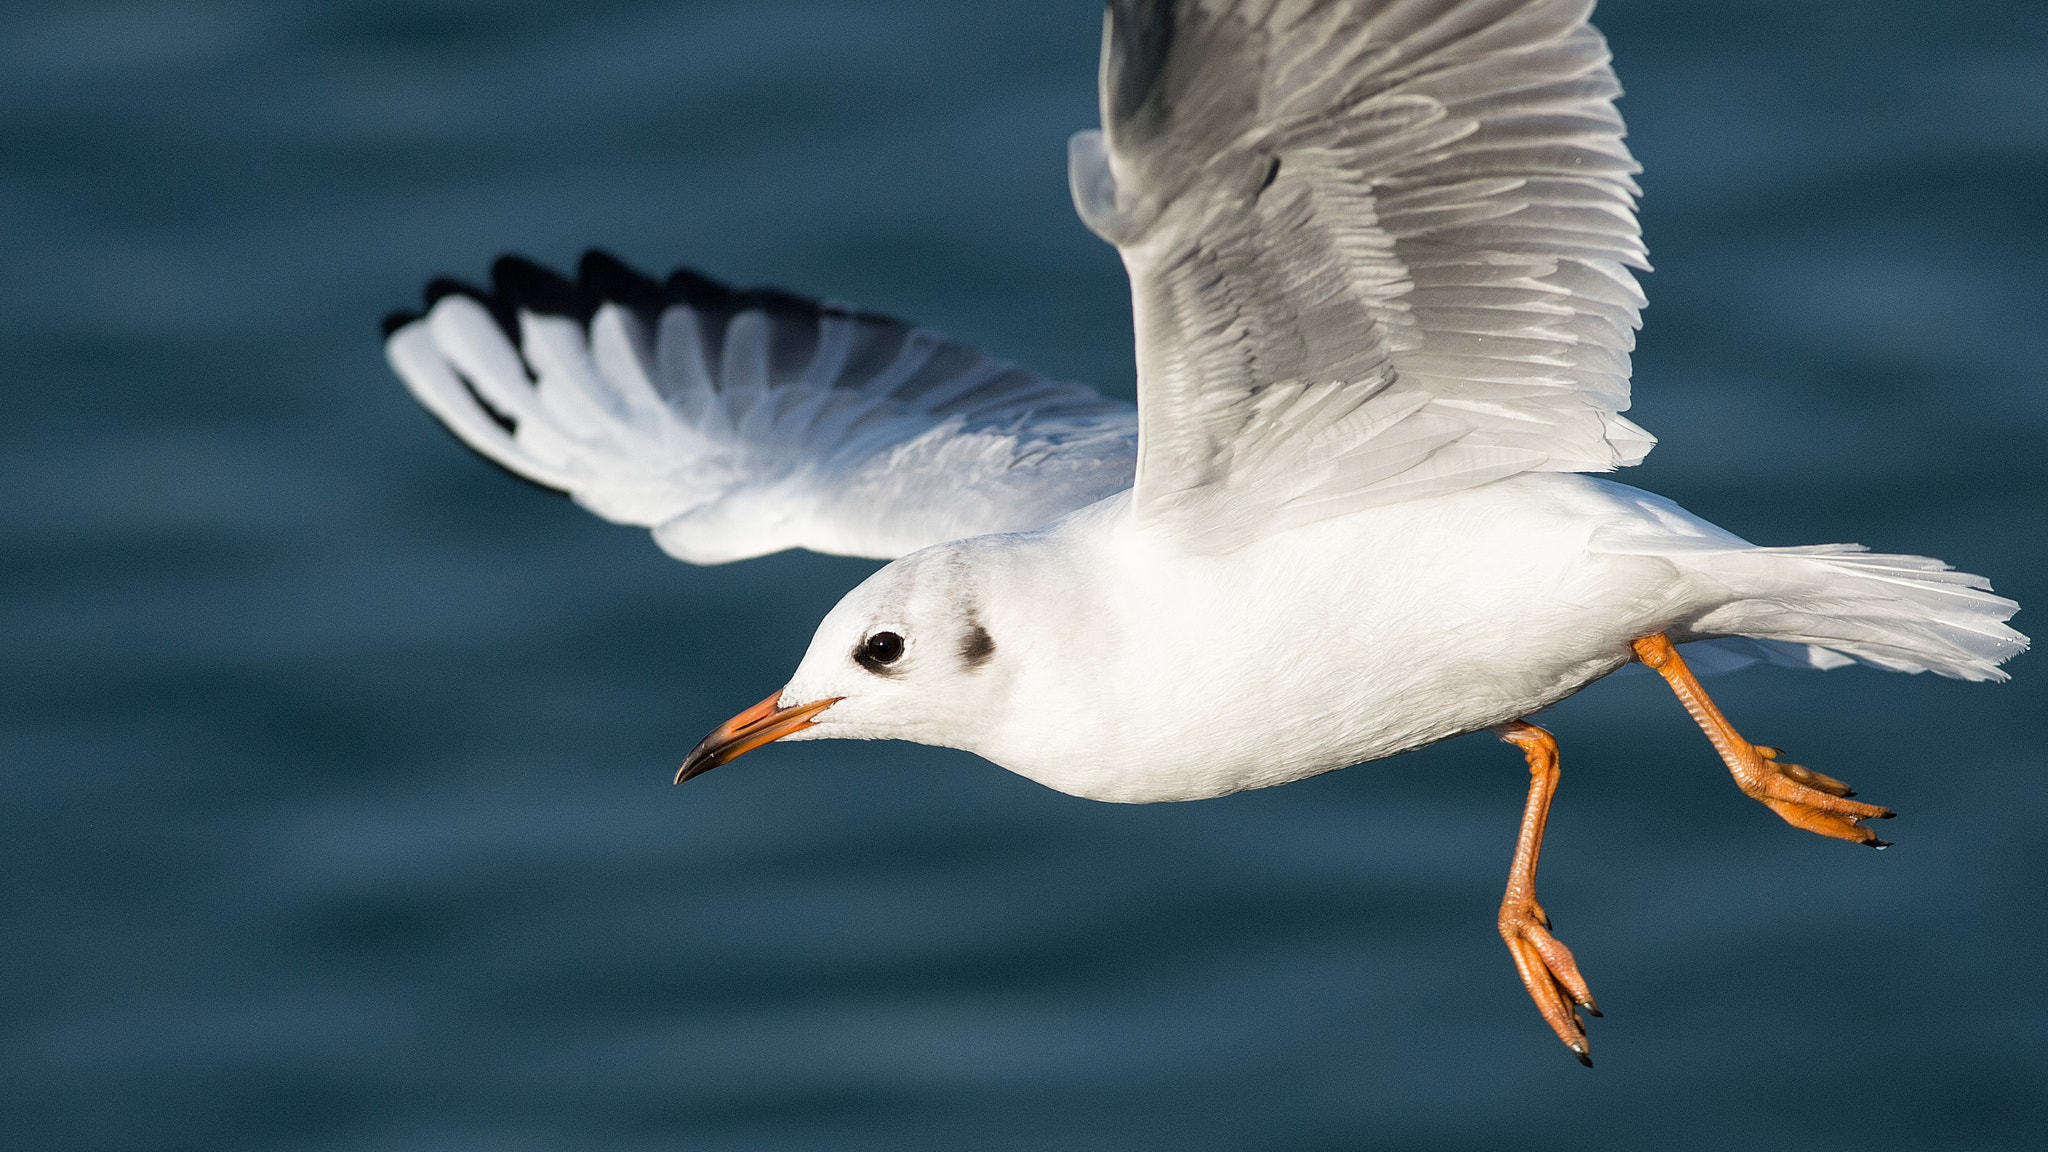 Photograph Möwe Close-Up | Seagull Close-Up by Franz Engels on 500px